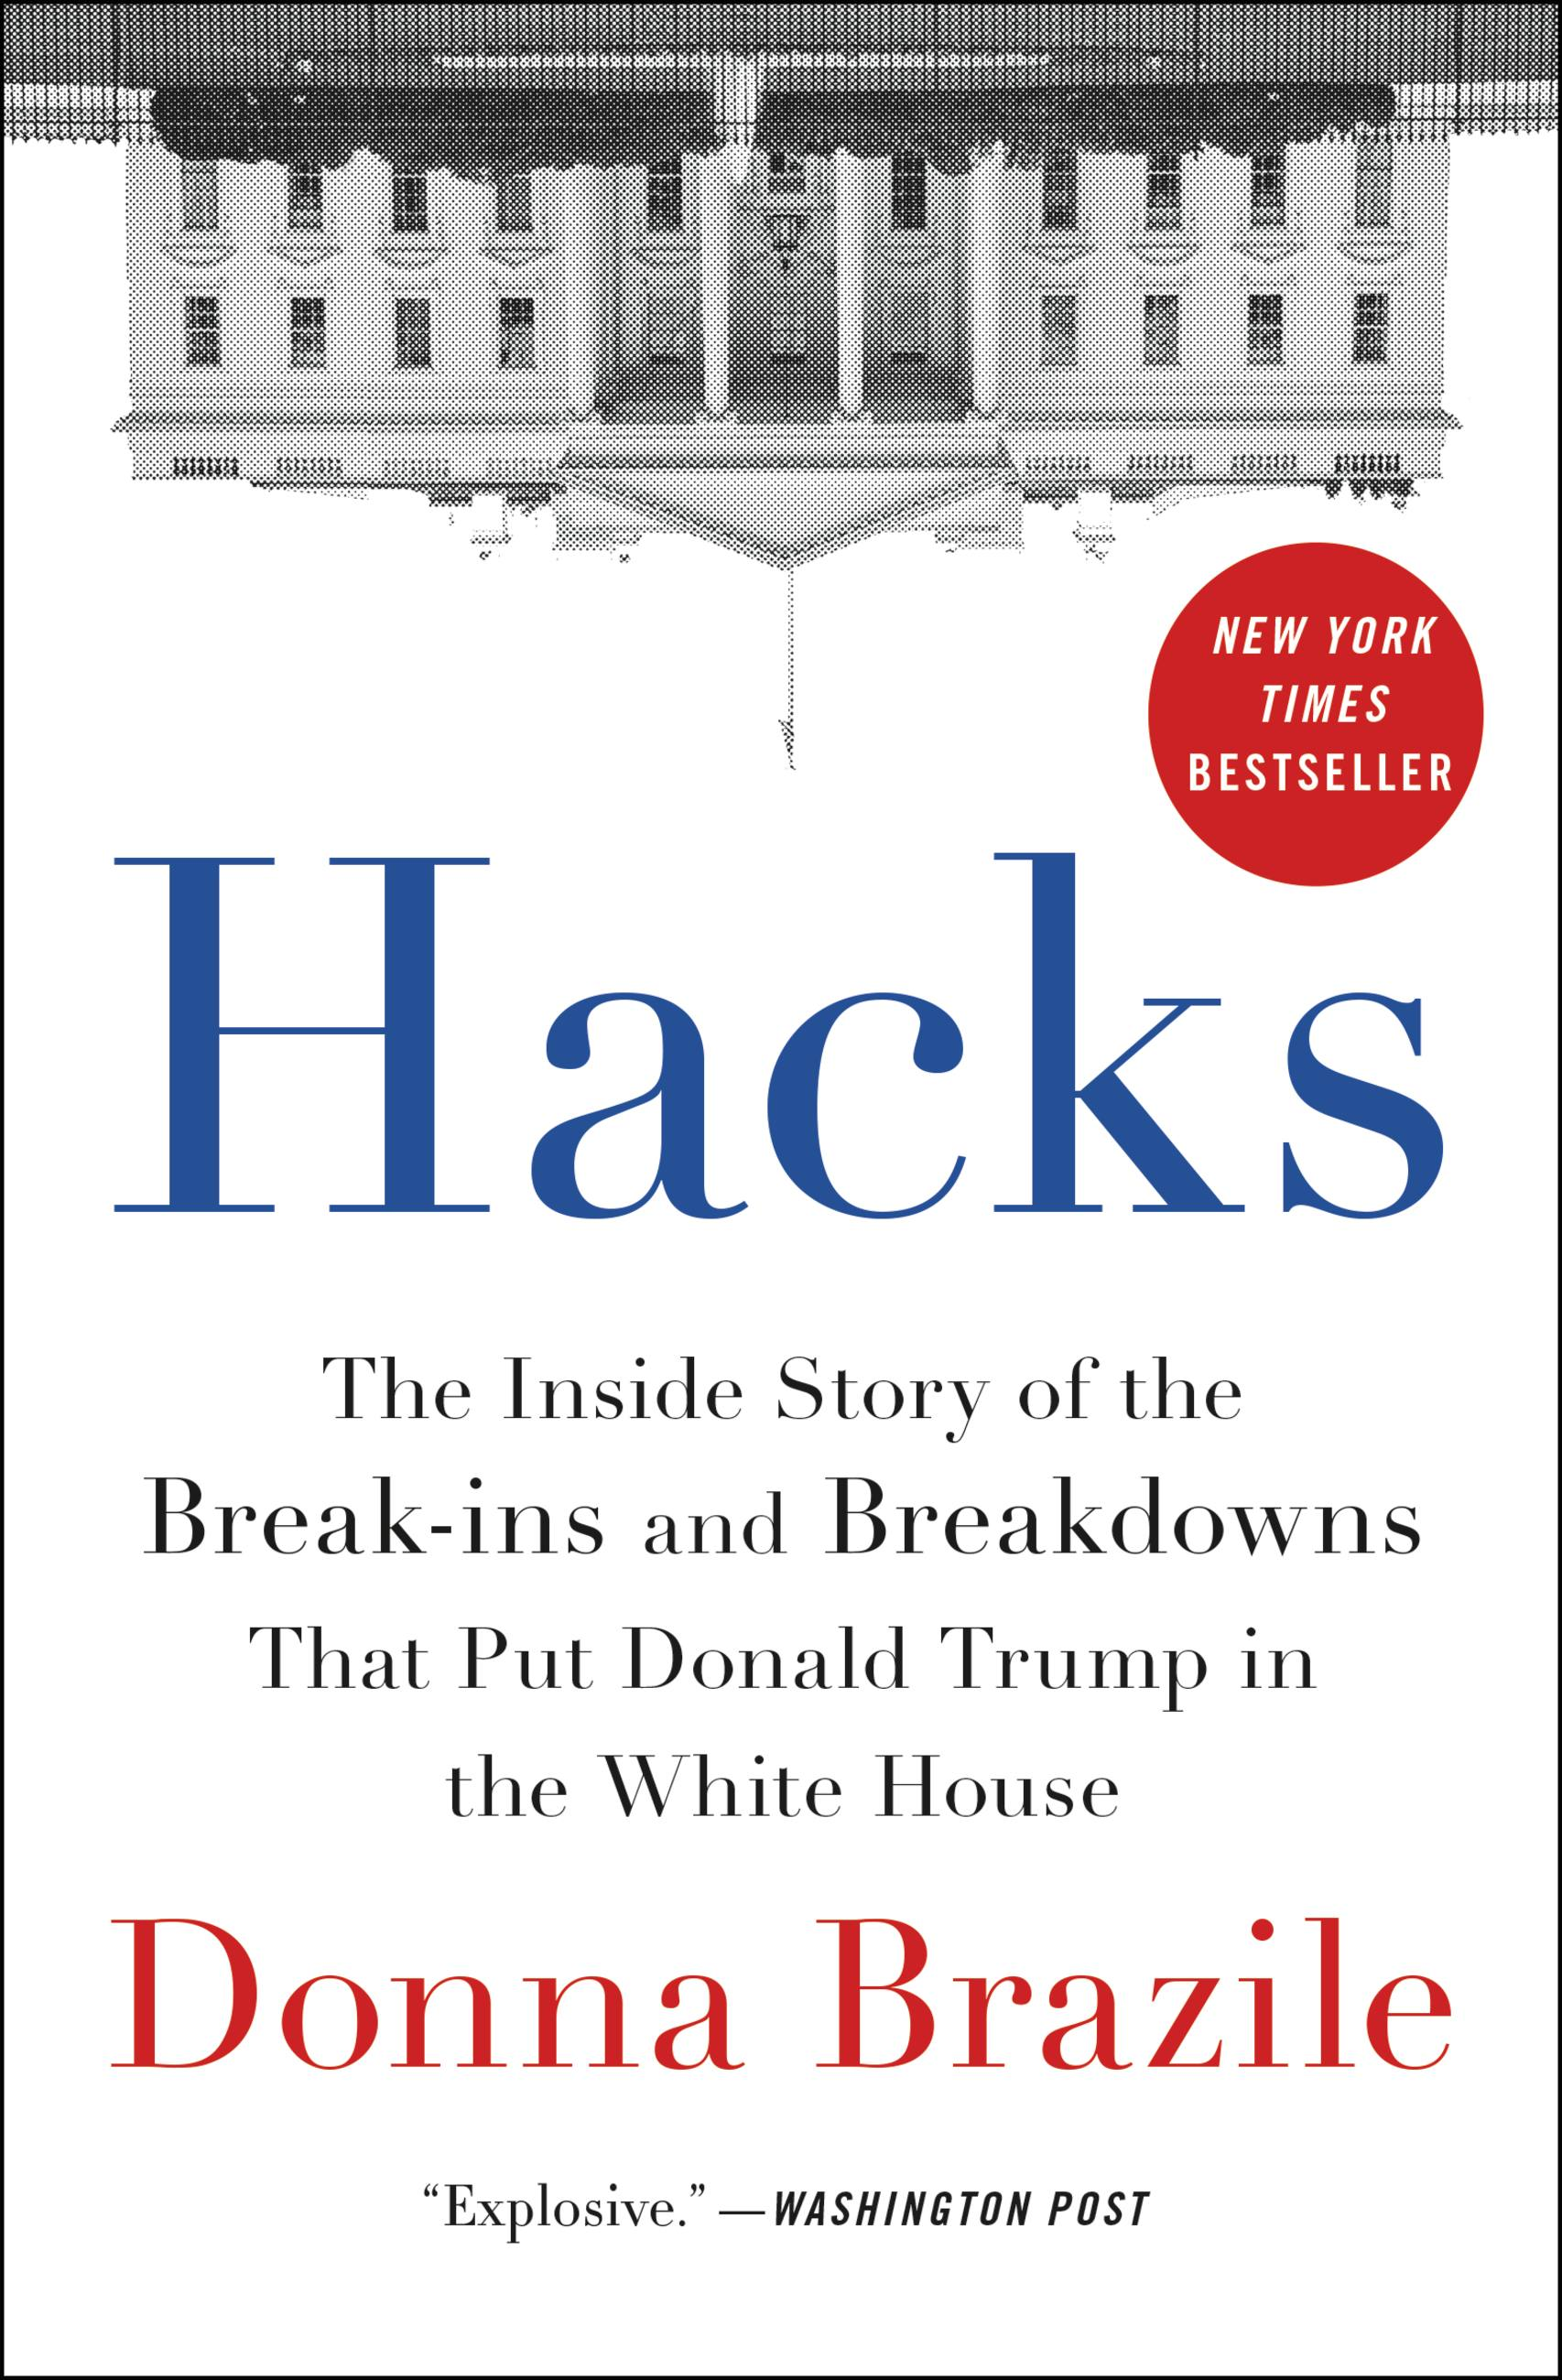 Hacks The Inside Story of the Break-ins and Breakdowns That Put Donald Trump in the White House